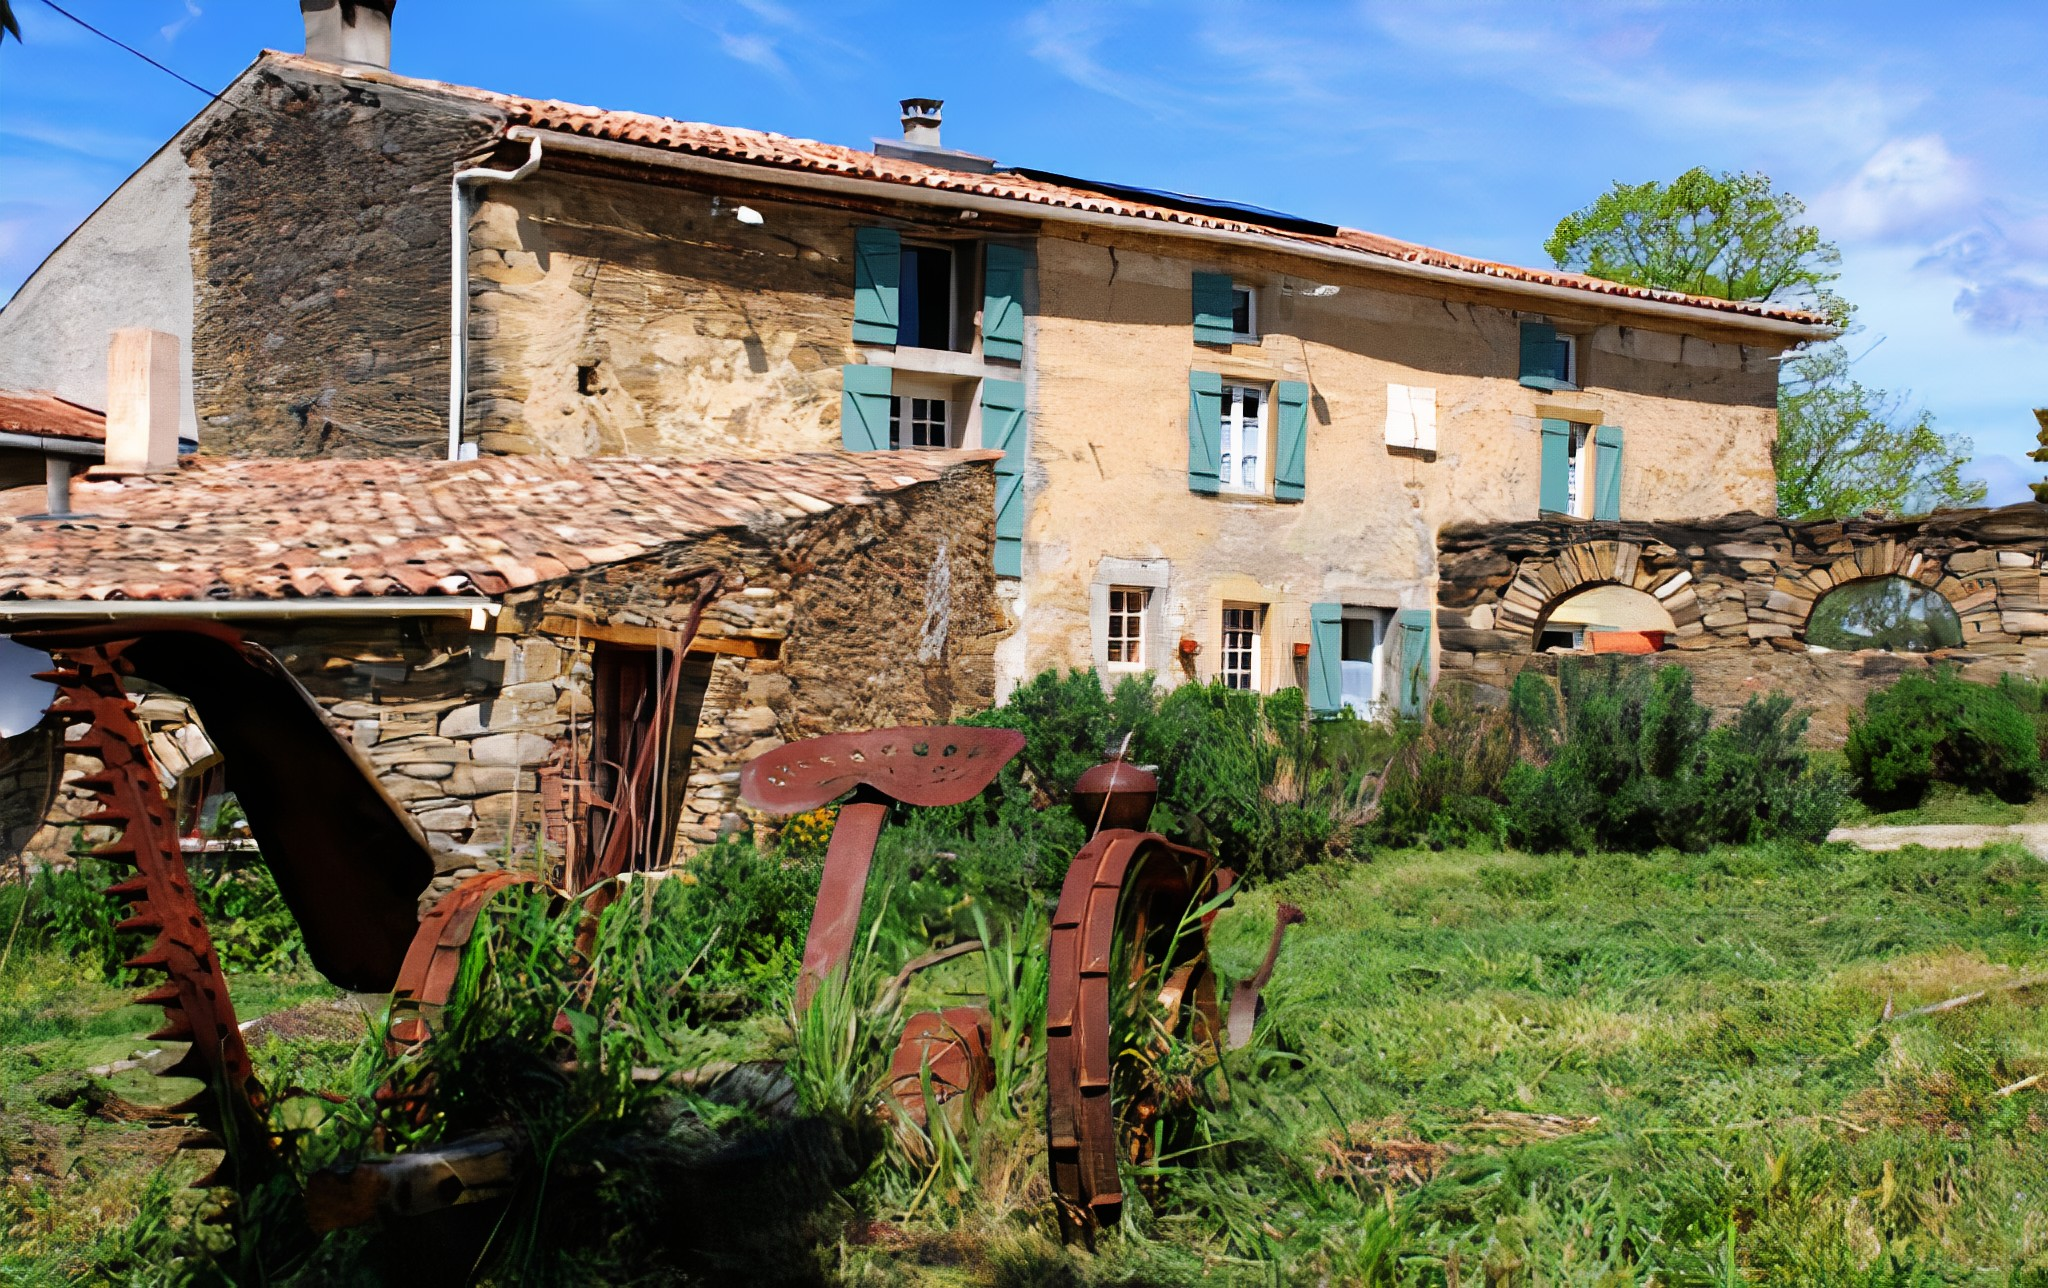 A group of lawn chairs sitting on top of a brick building at Domaine Bellelauze.